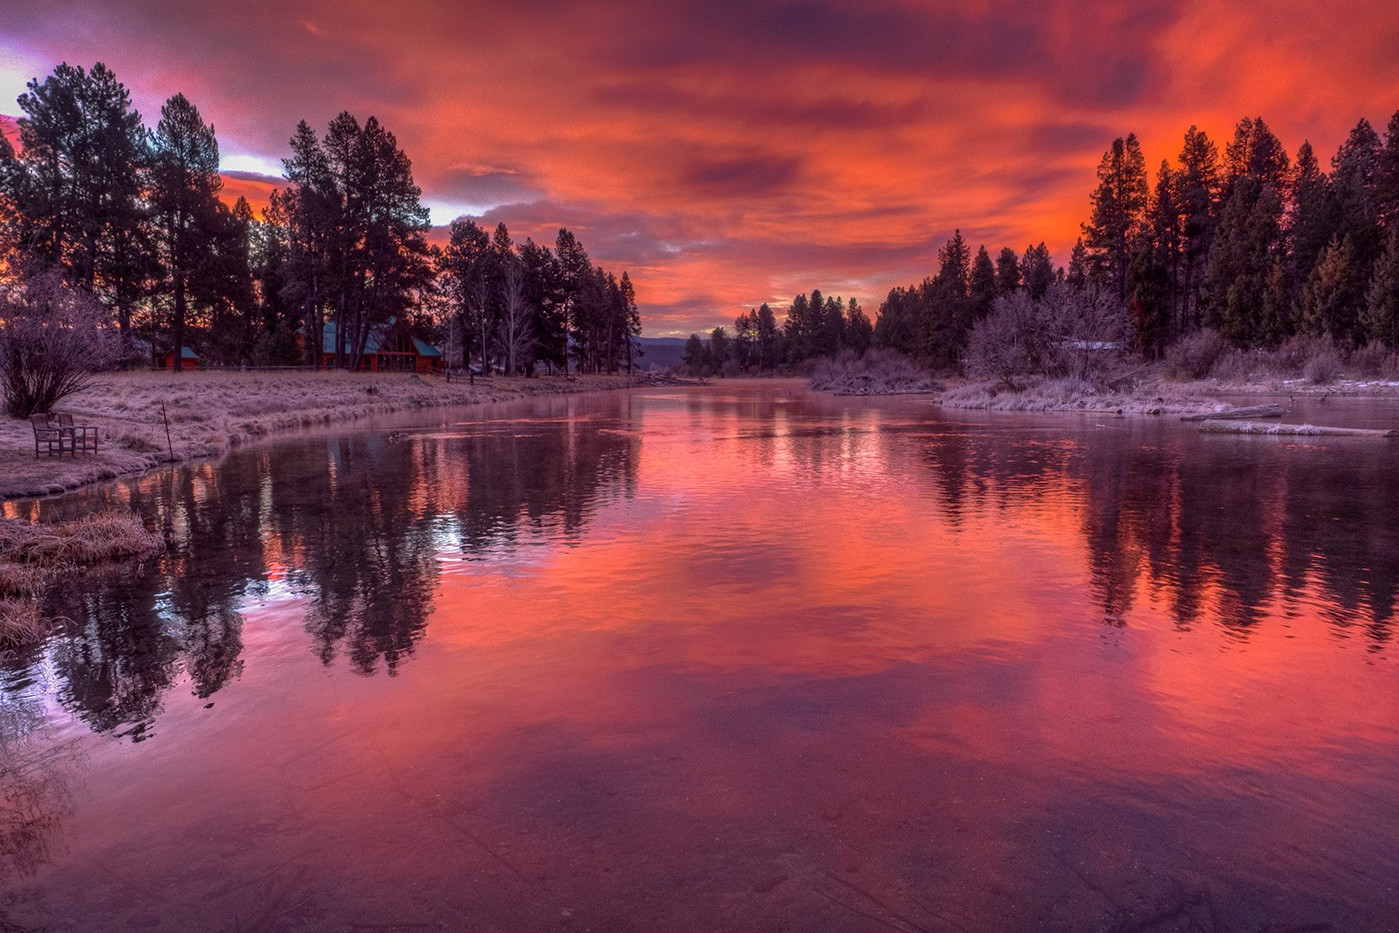 Red Sky in the Morning by Dan Mitchell score 20